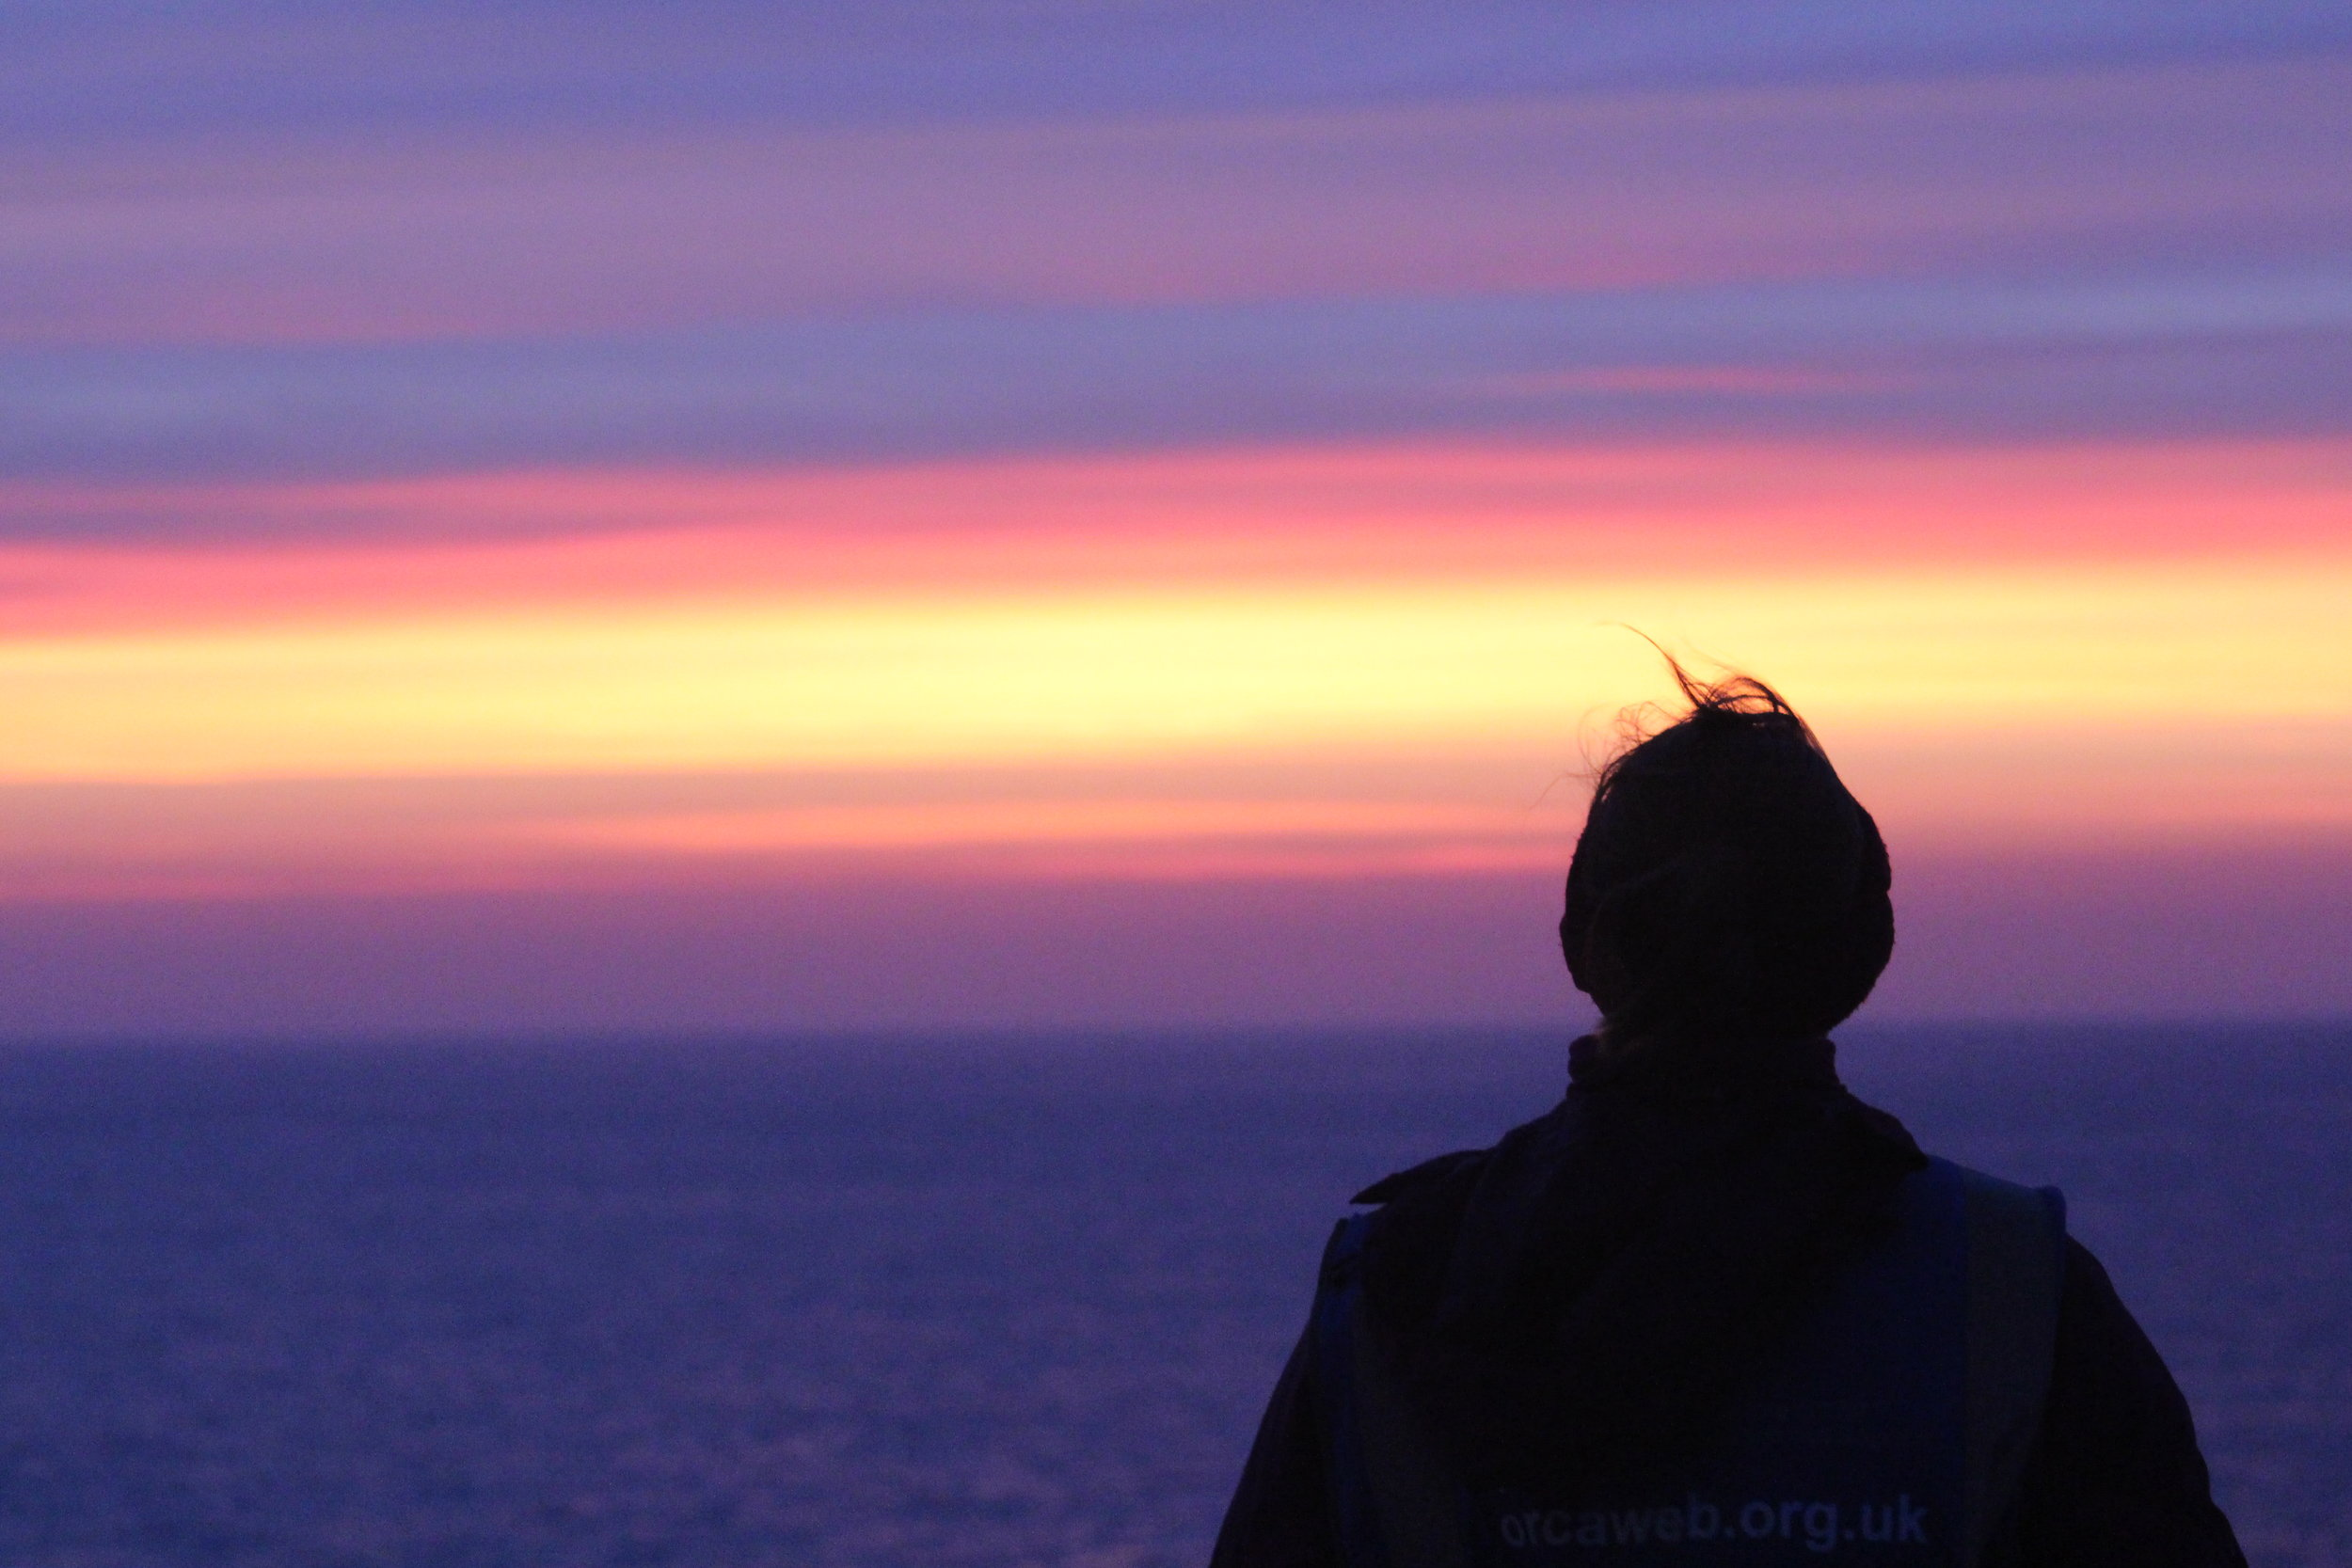 A stunning skyline in the Bay of Biscay